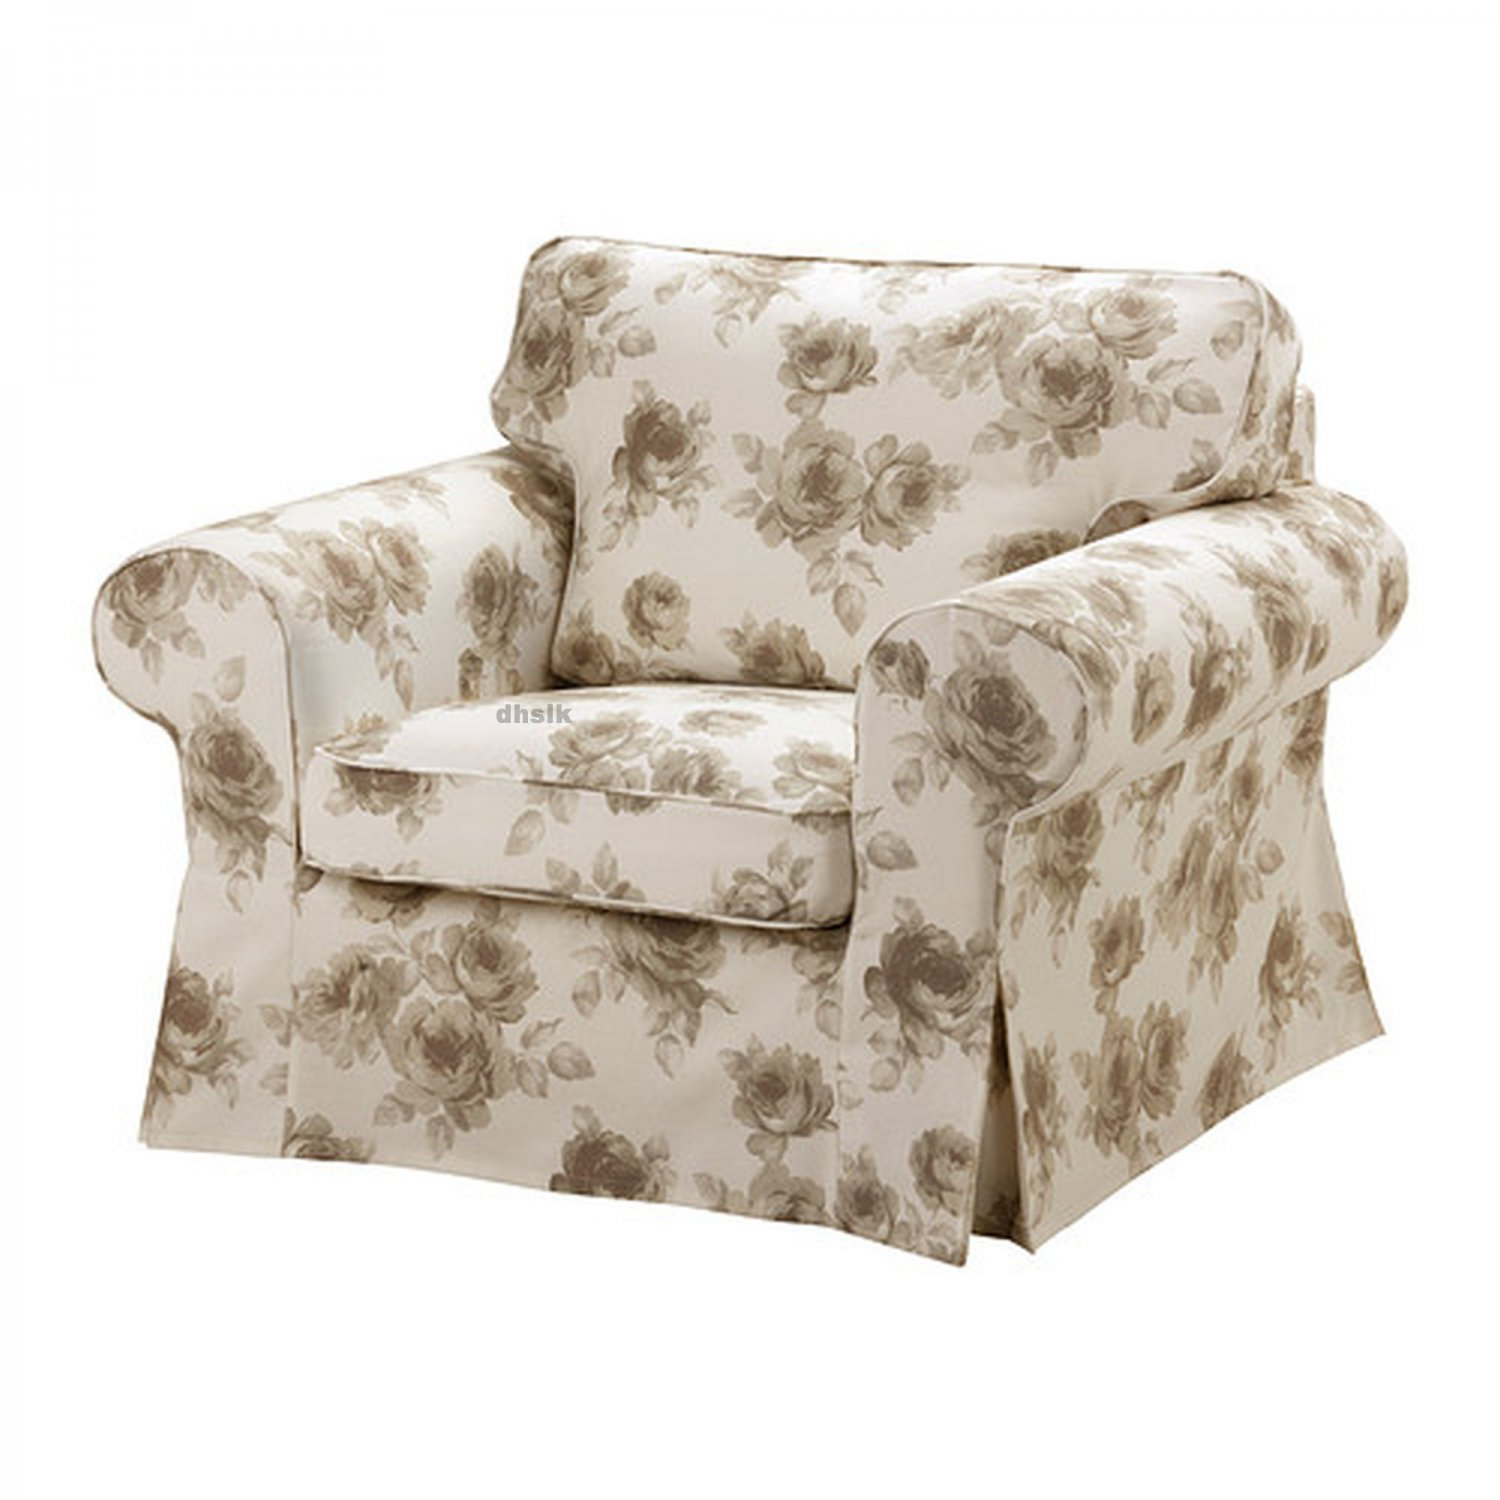 ikea ektorp armchair slipcover cover norlida beige white floral. Black Bedroom Furniture Sets. Home Design Ideas